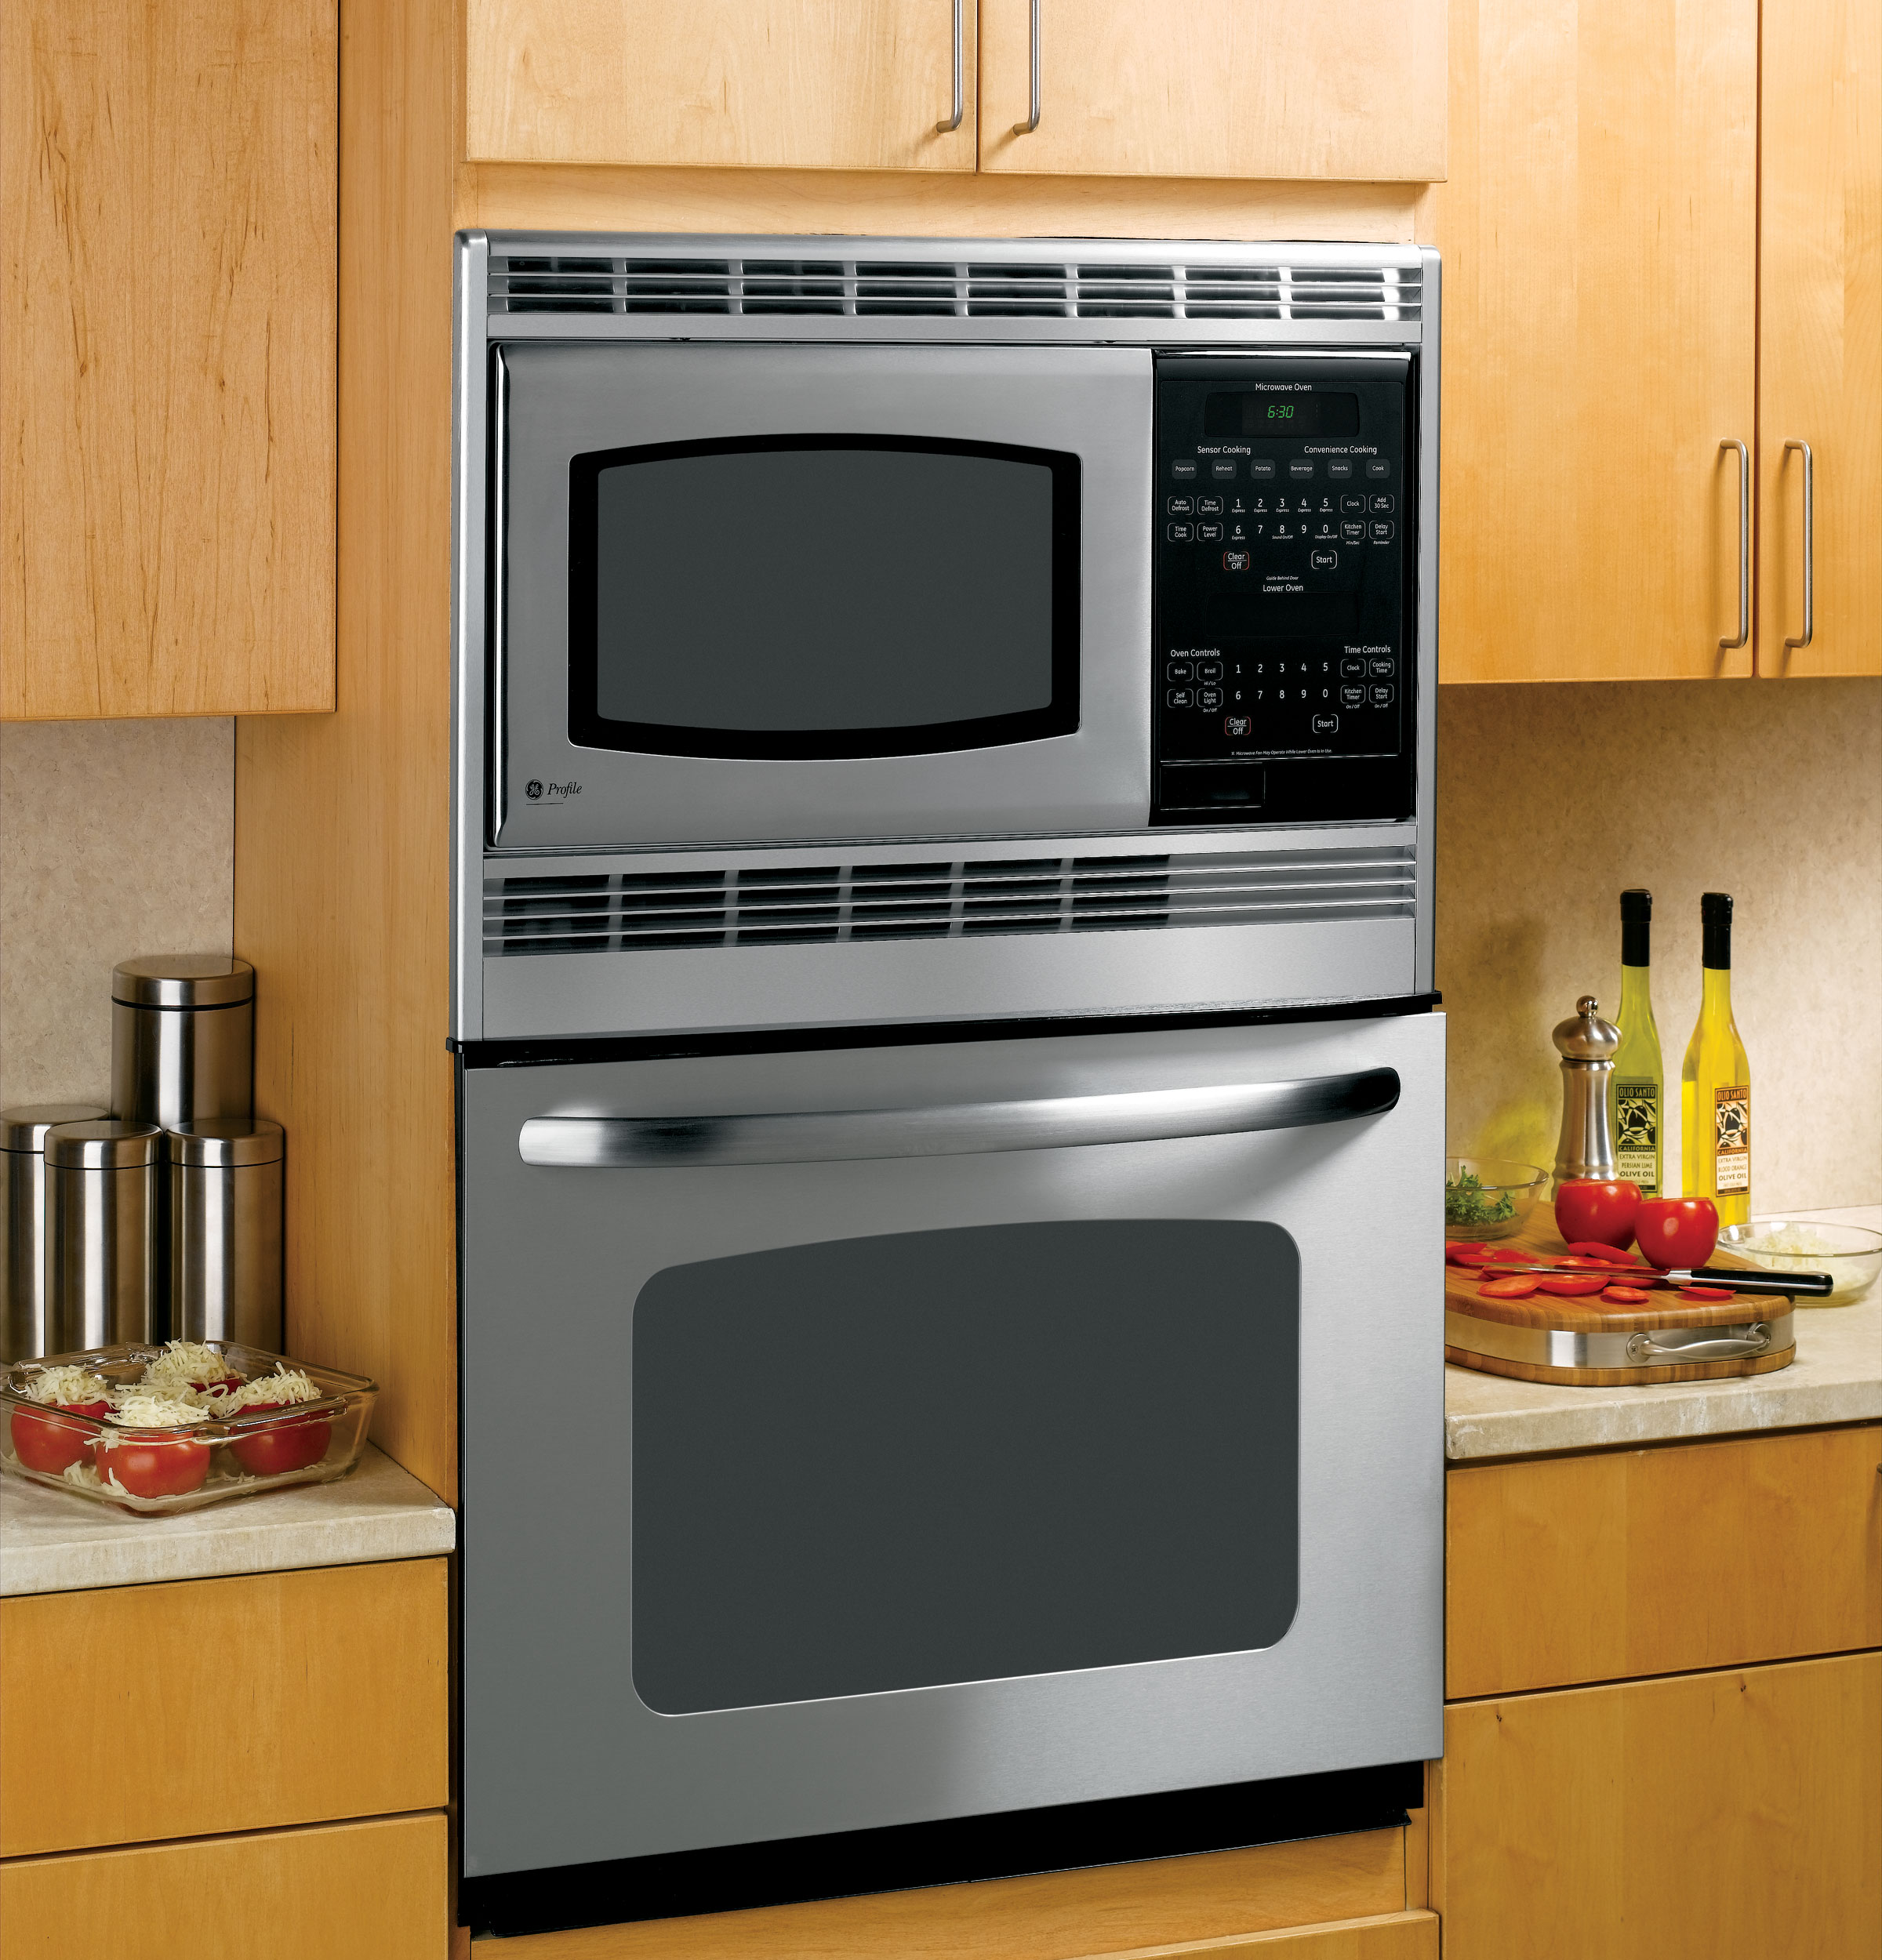 Double Oven New With Microwave Built In Jenn Air Wiring Diagram